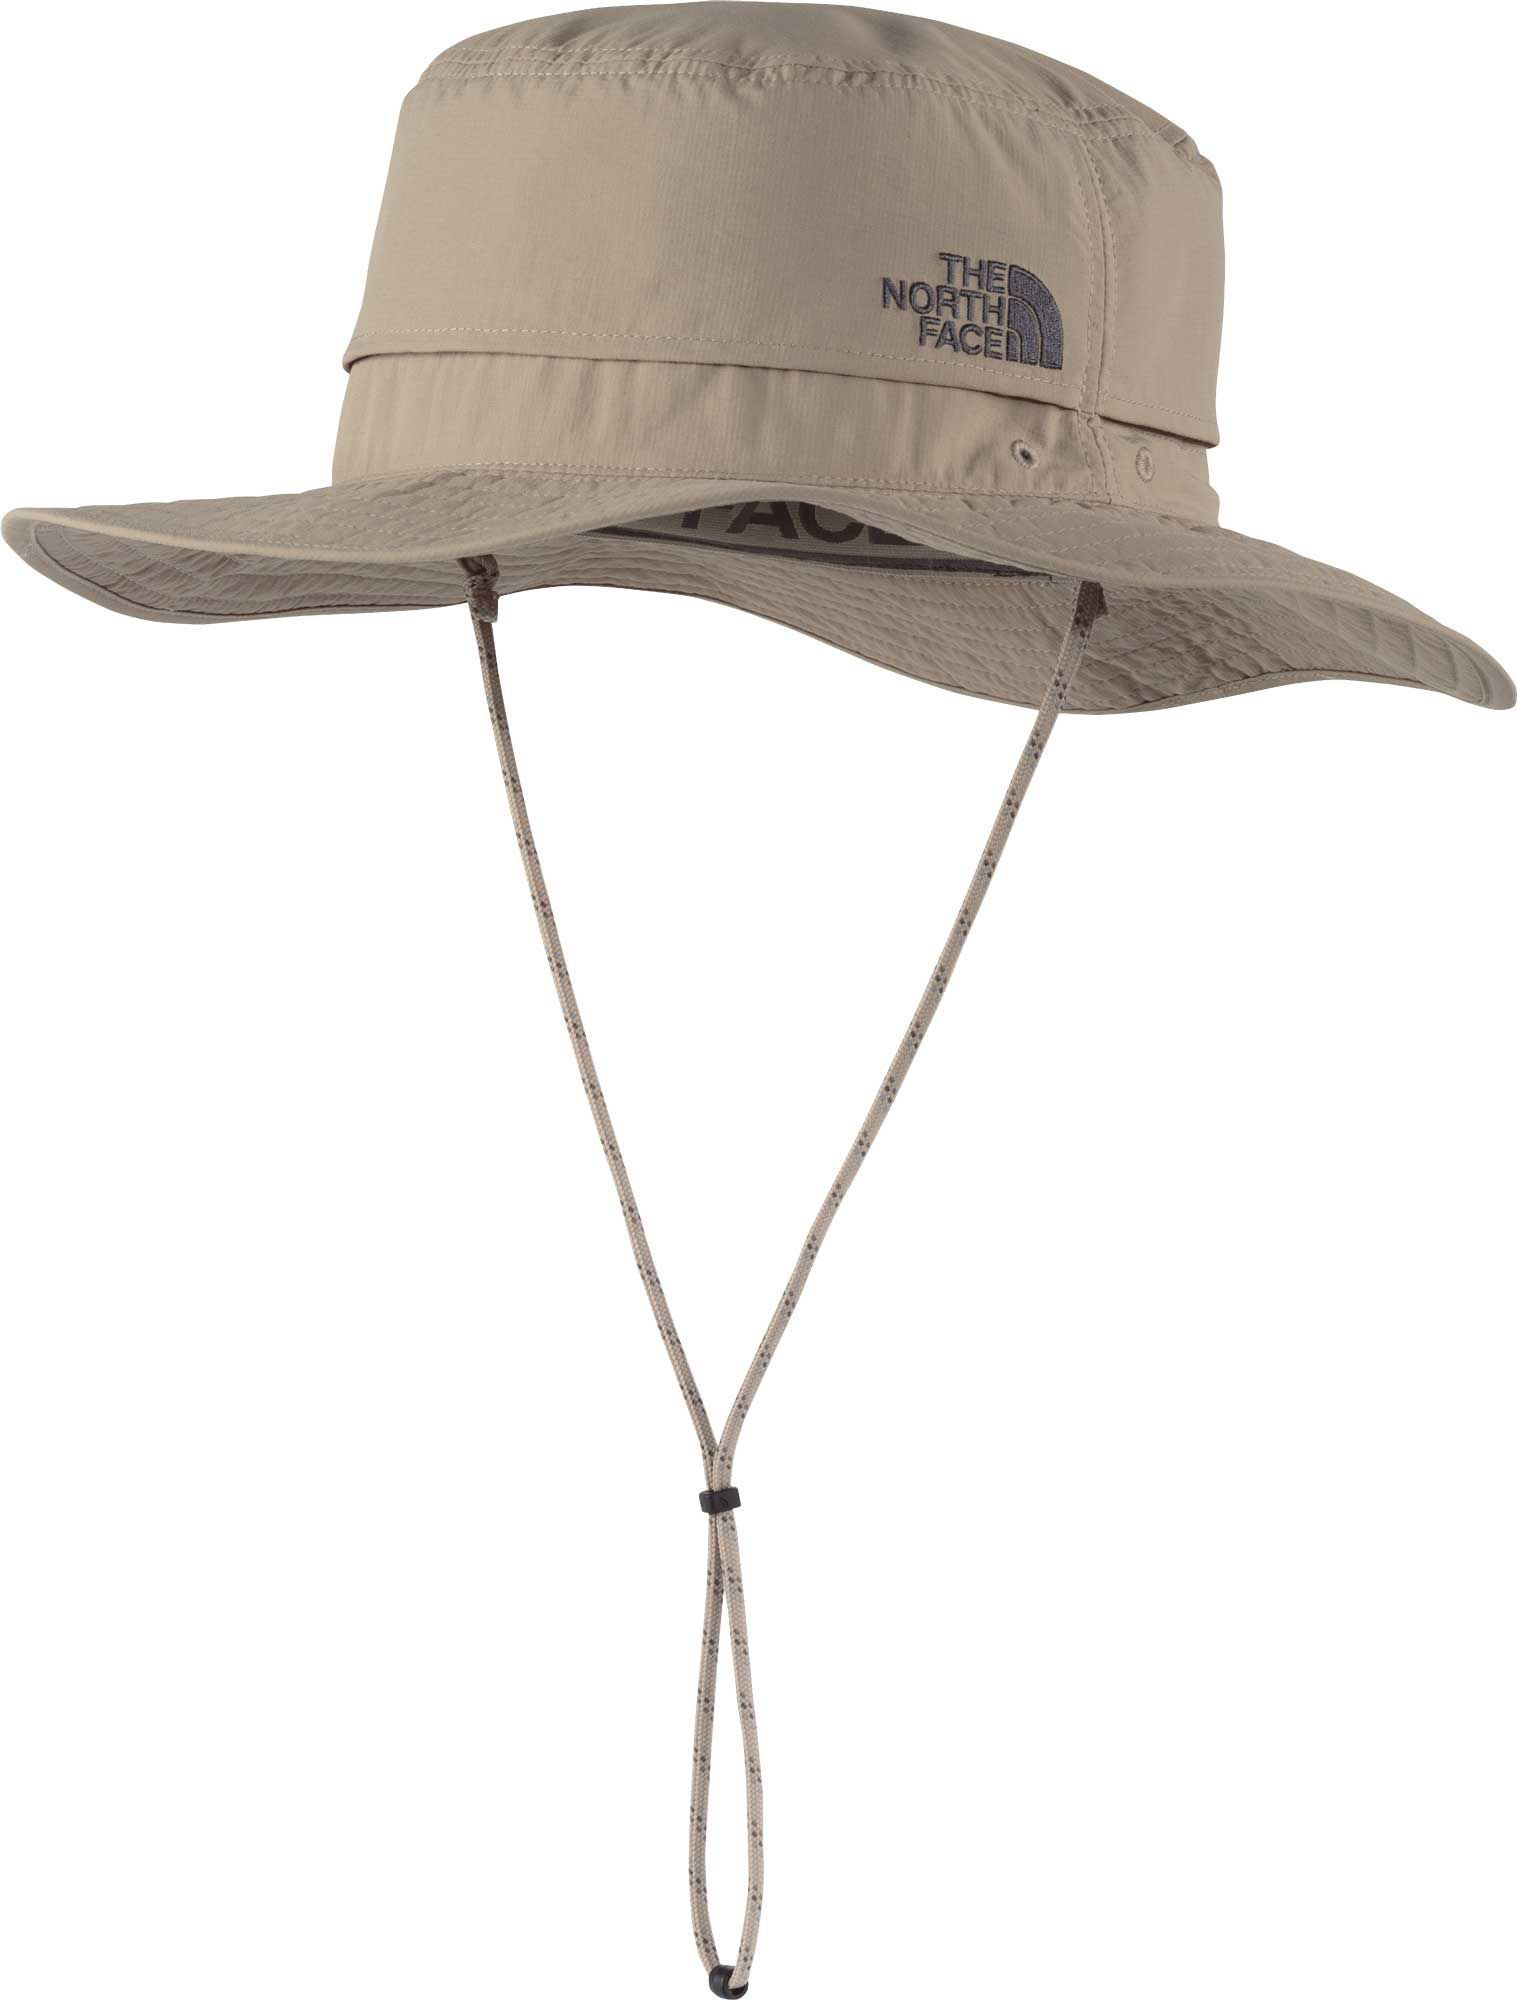 989601fc5 The North Face Men's Horizon Breeze Brimmer Hat | Products | Hats ...